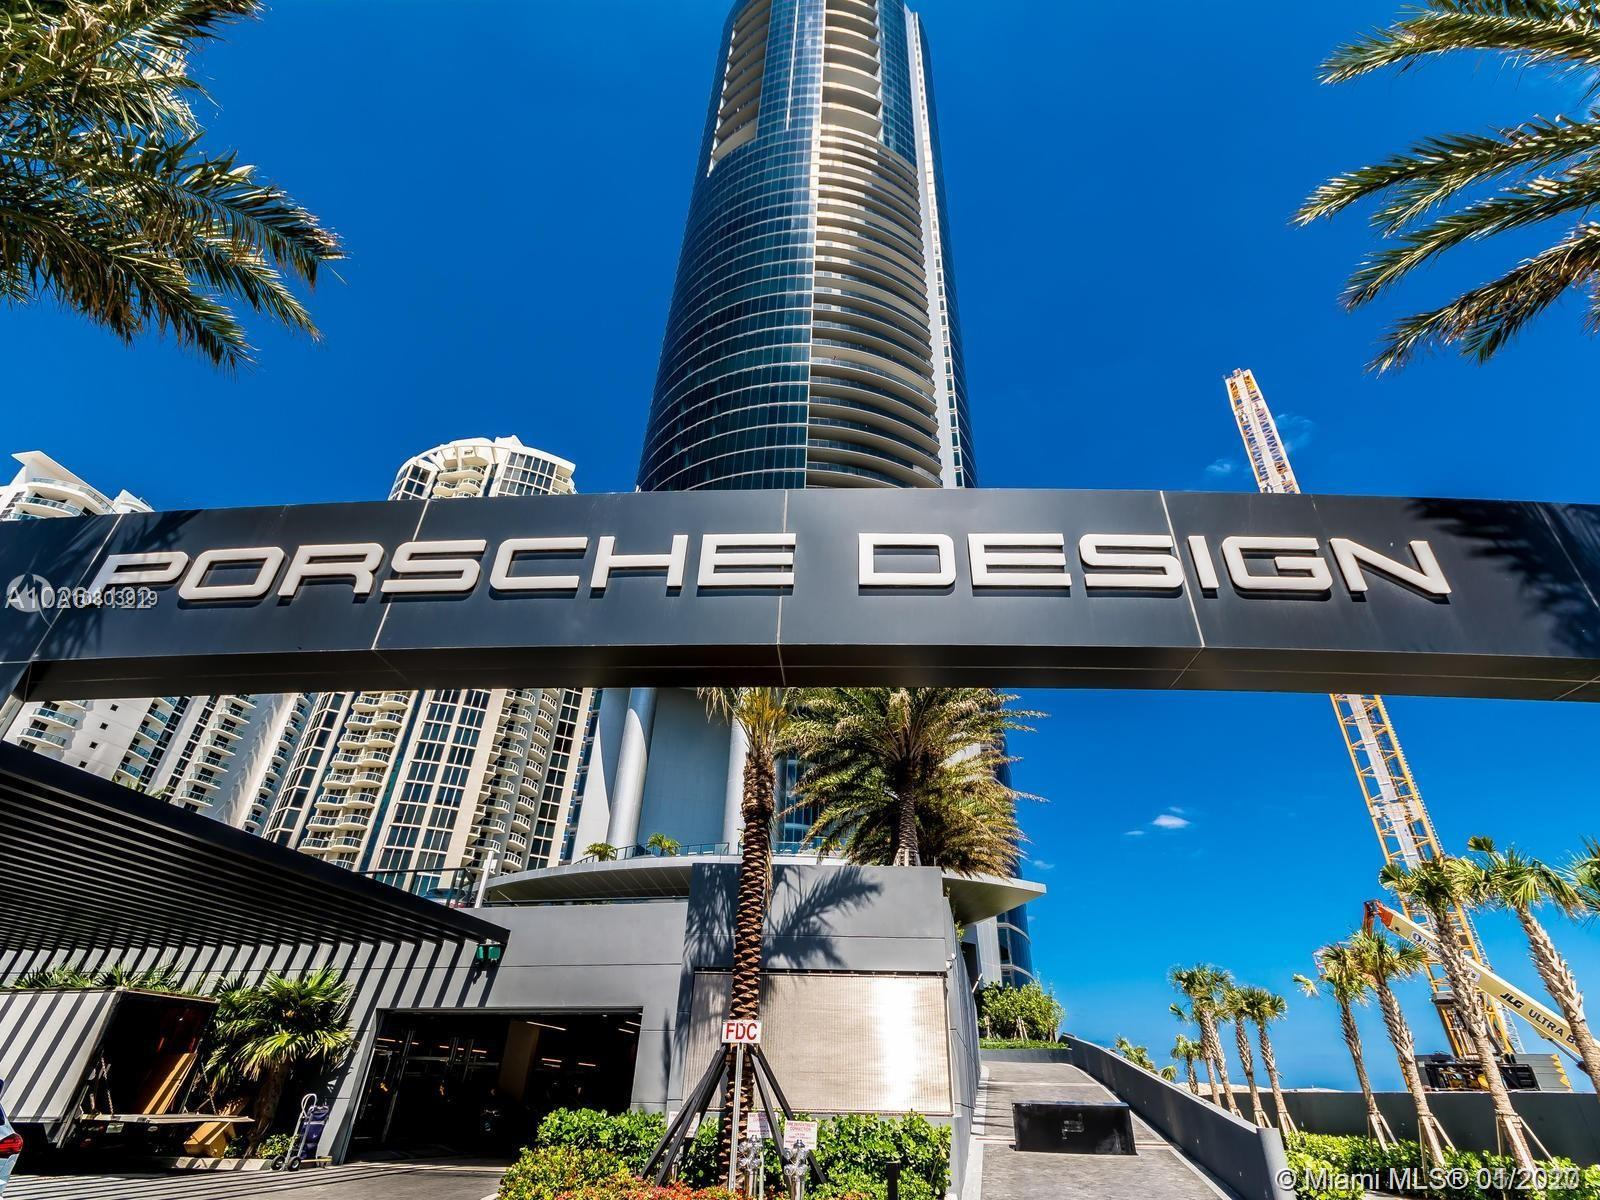 18555 Collins Ave, Unit #4804 Luxury Real Estate